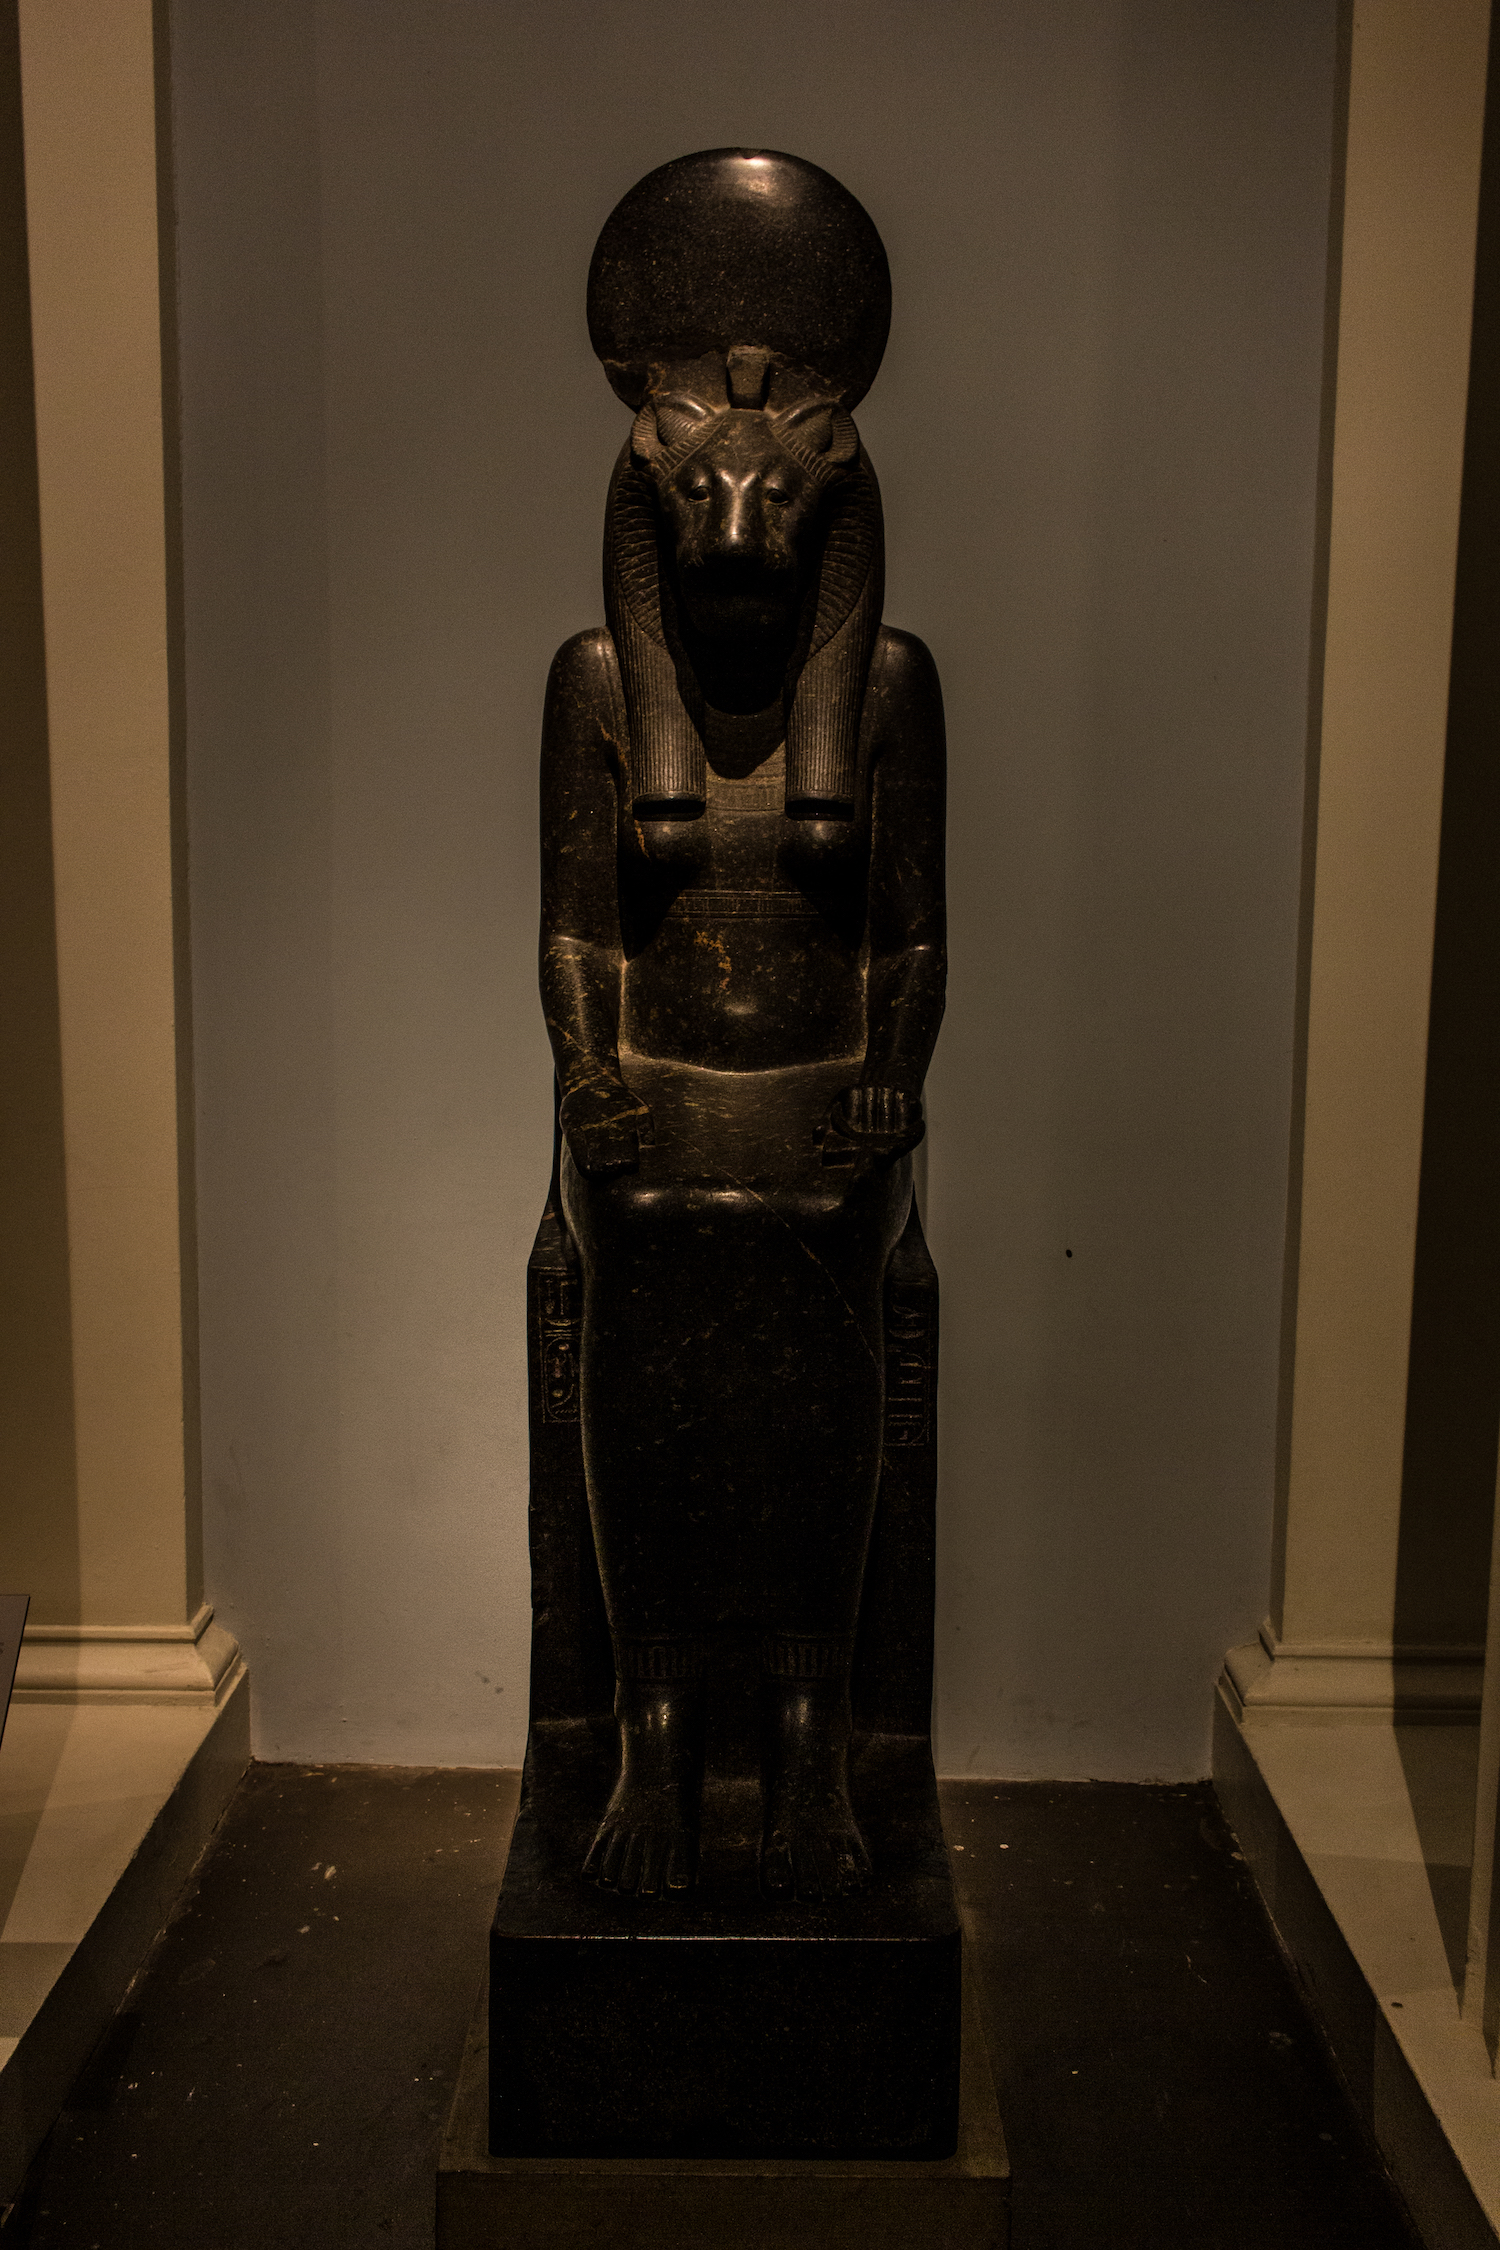 Professional Photography Stone Sculpture From Kemet Egypt Of The Goddess Sekhmet In British Museum London